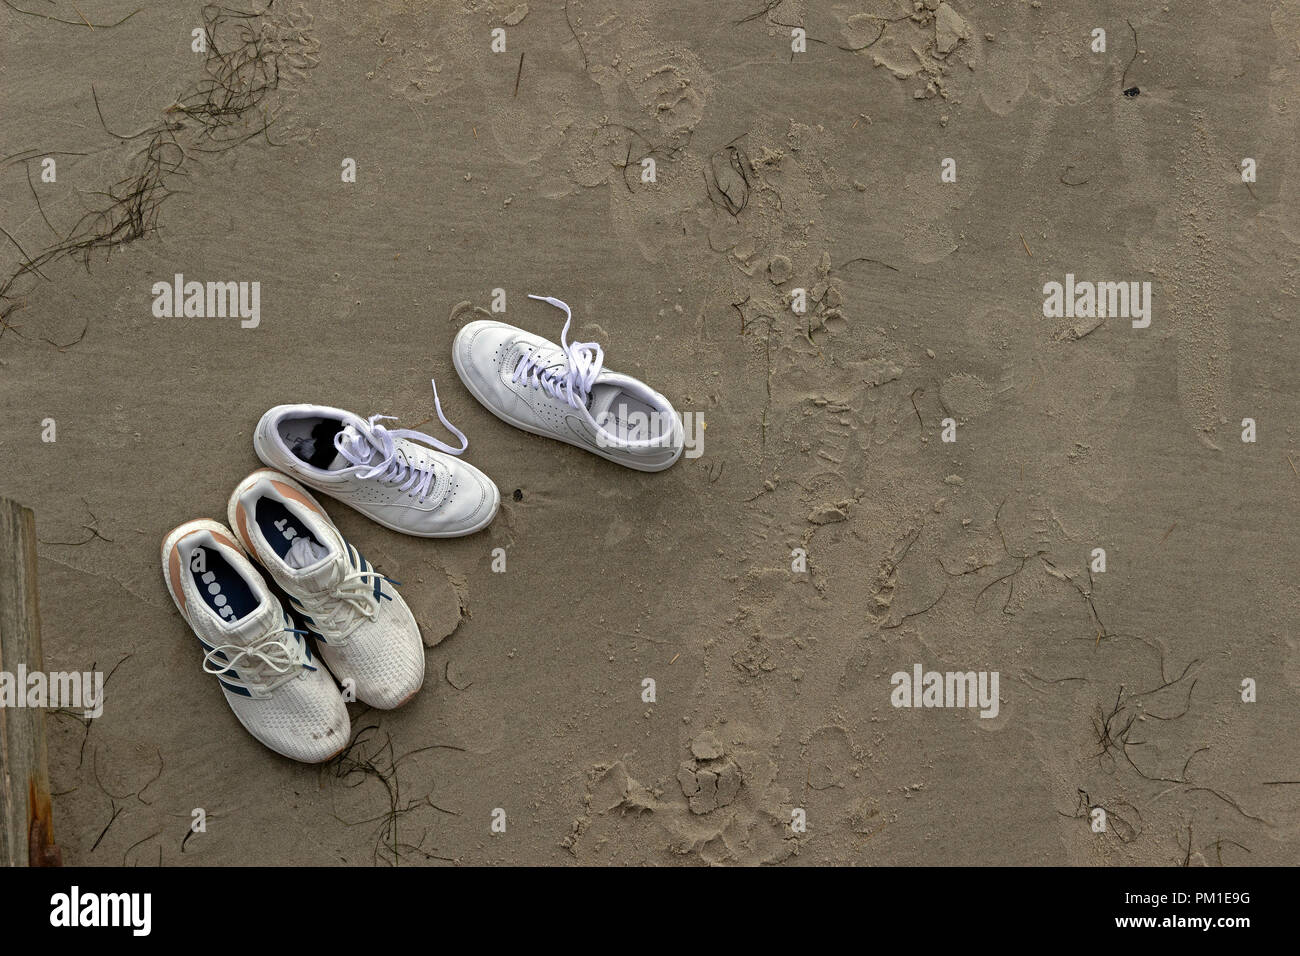 shoes at the beach, St. Peter-Ording, Schleswig-Holstein, Germany - Stock Image